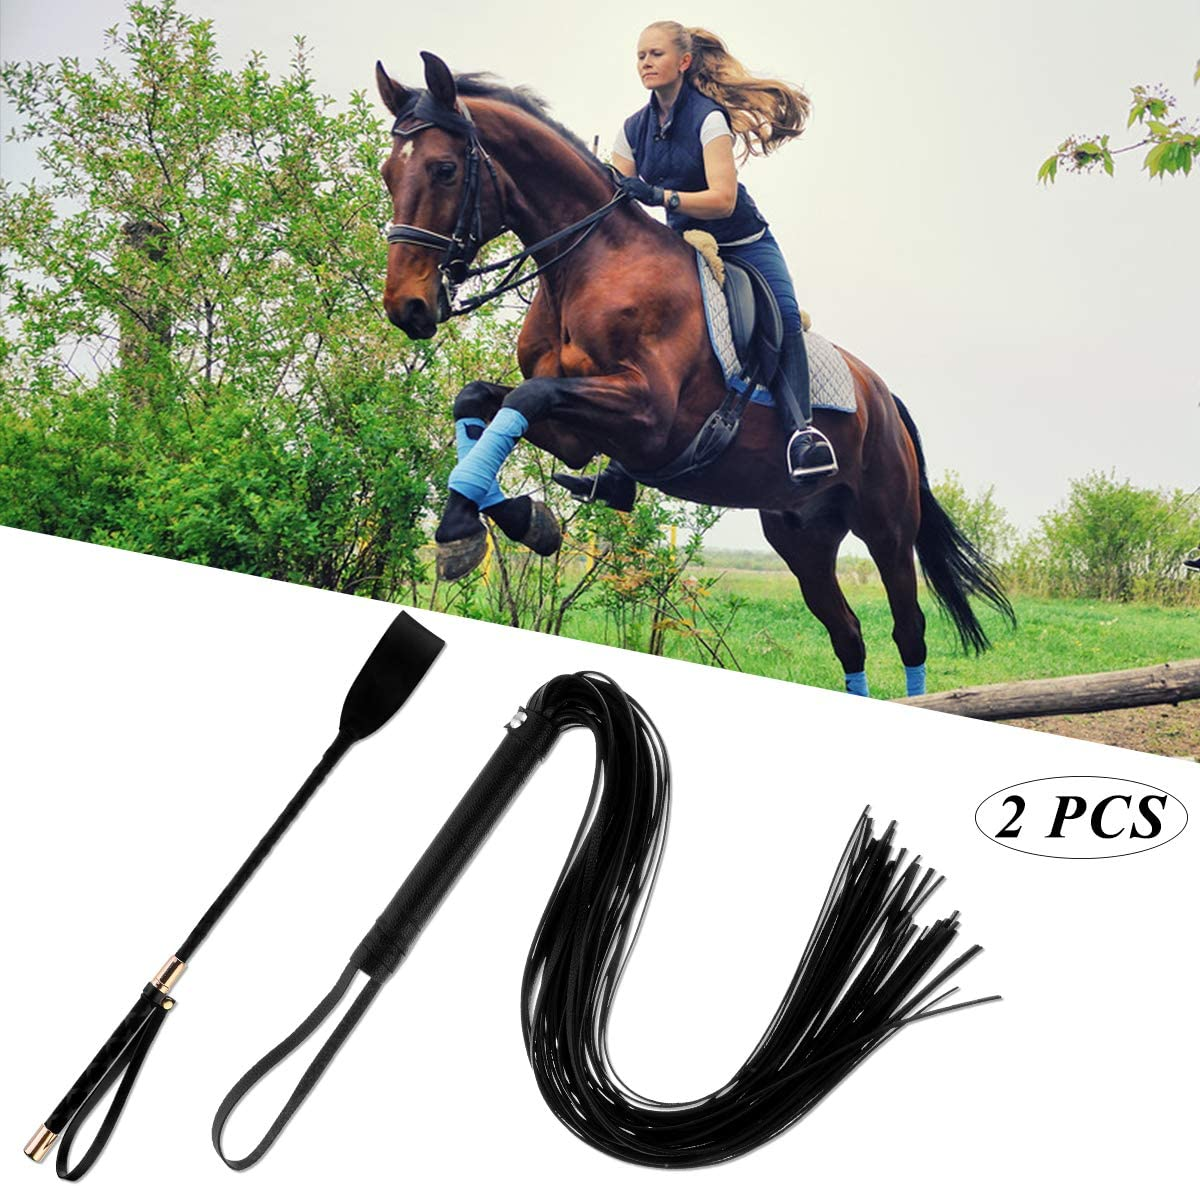 Faux Leather Horse Riding Whip Whip and Crop